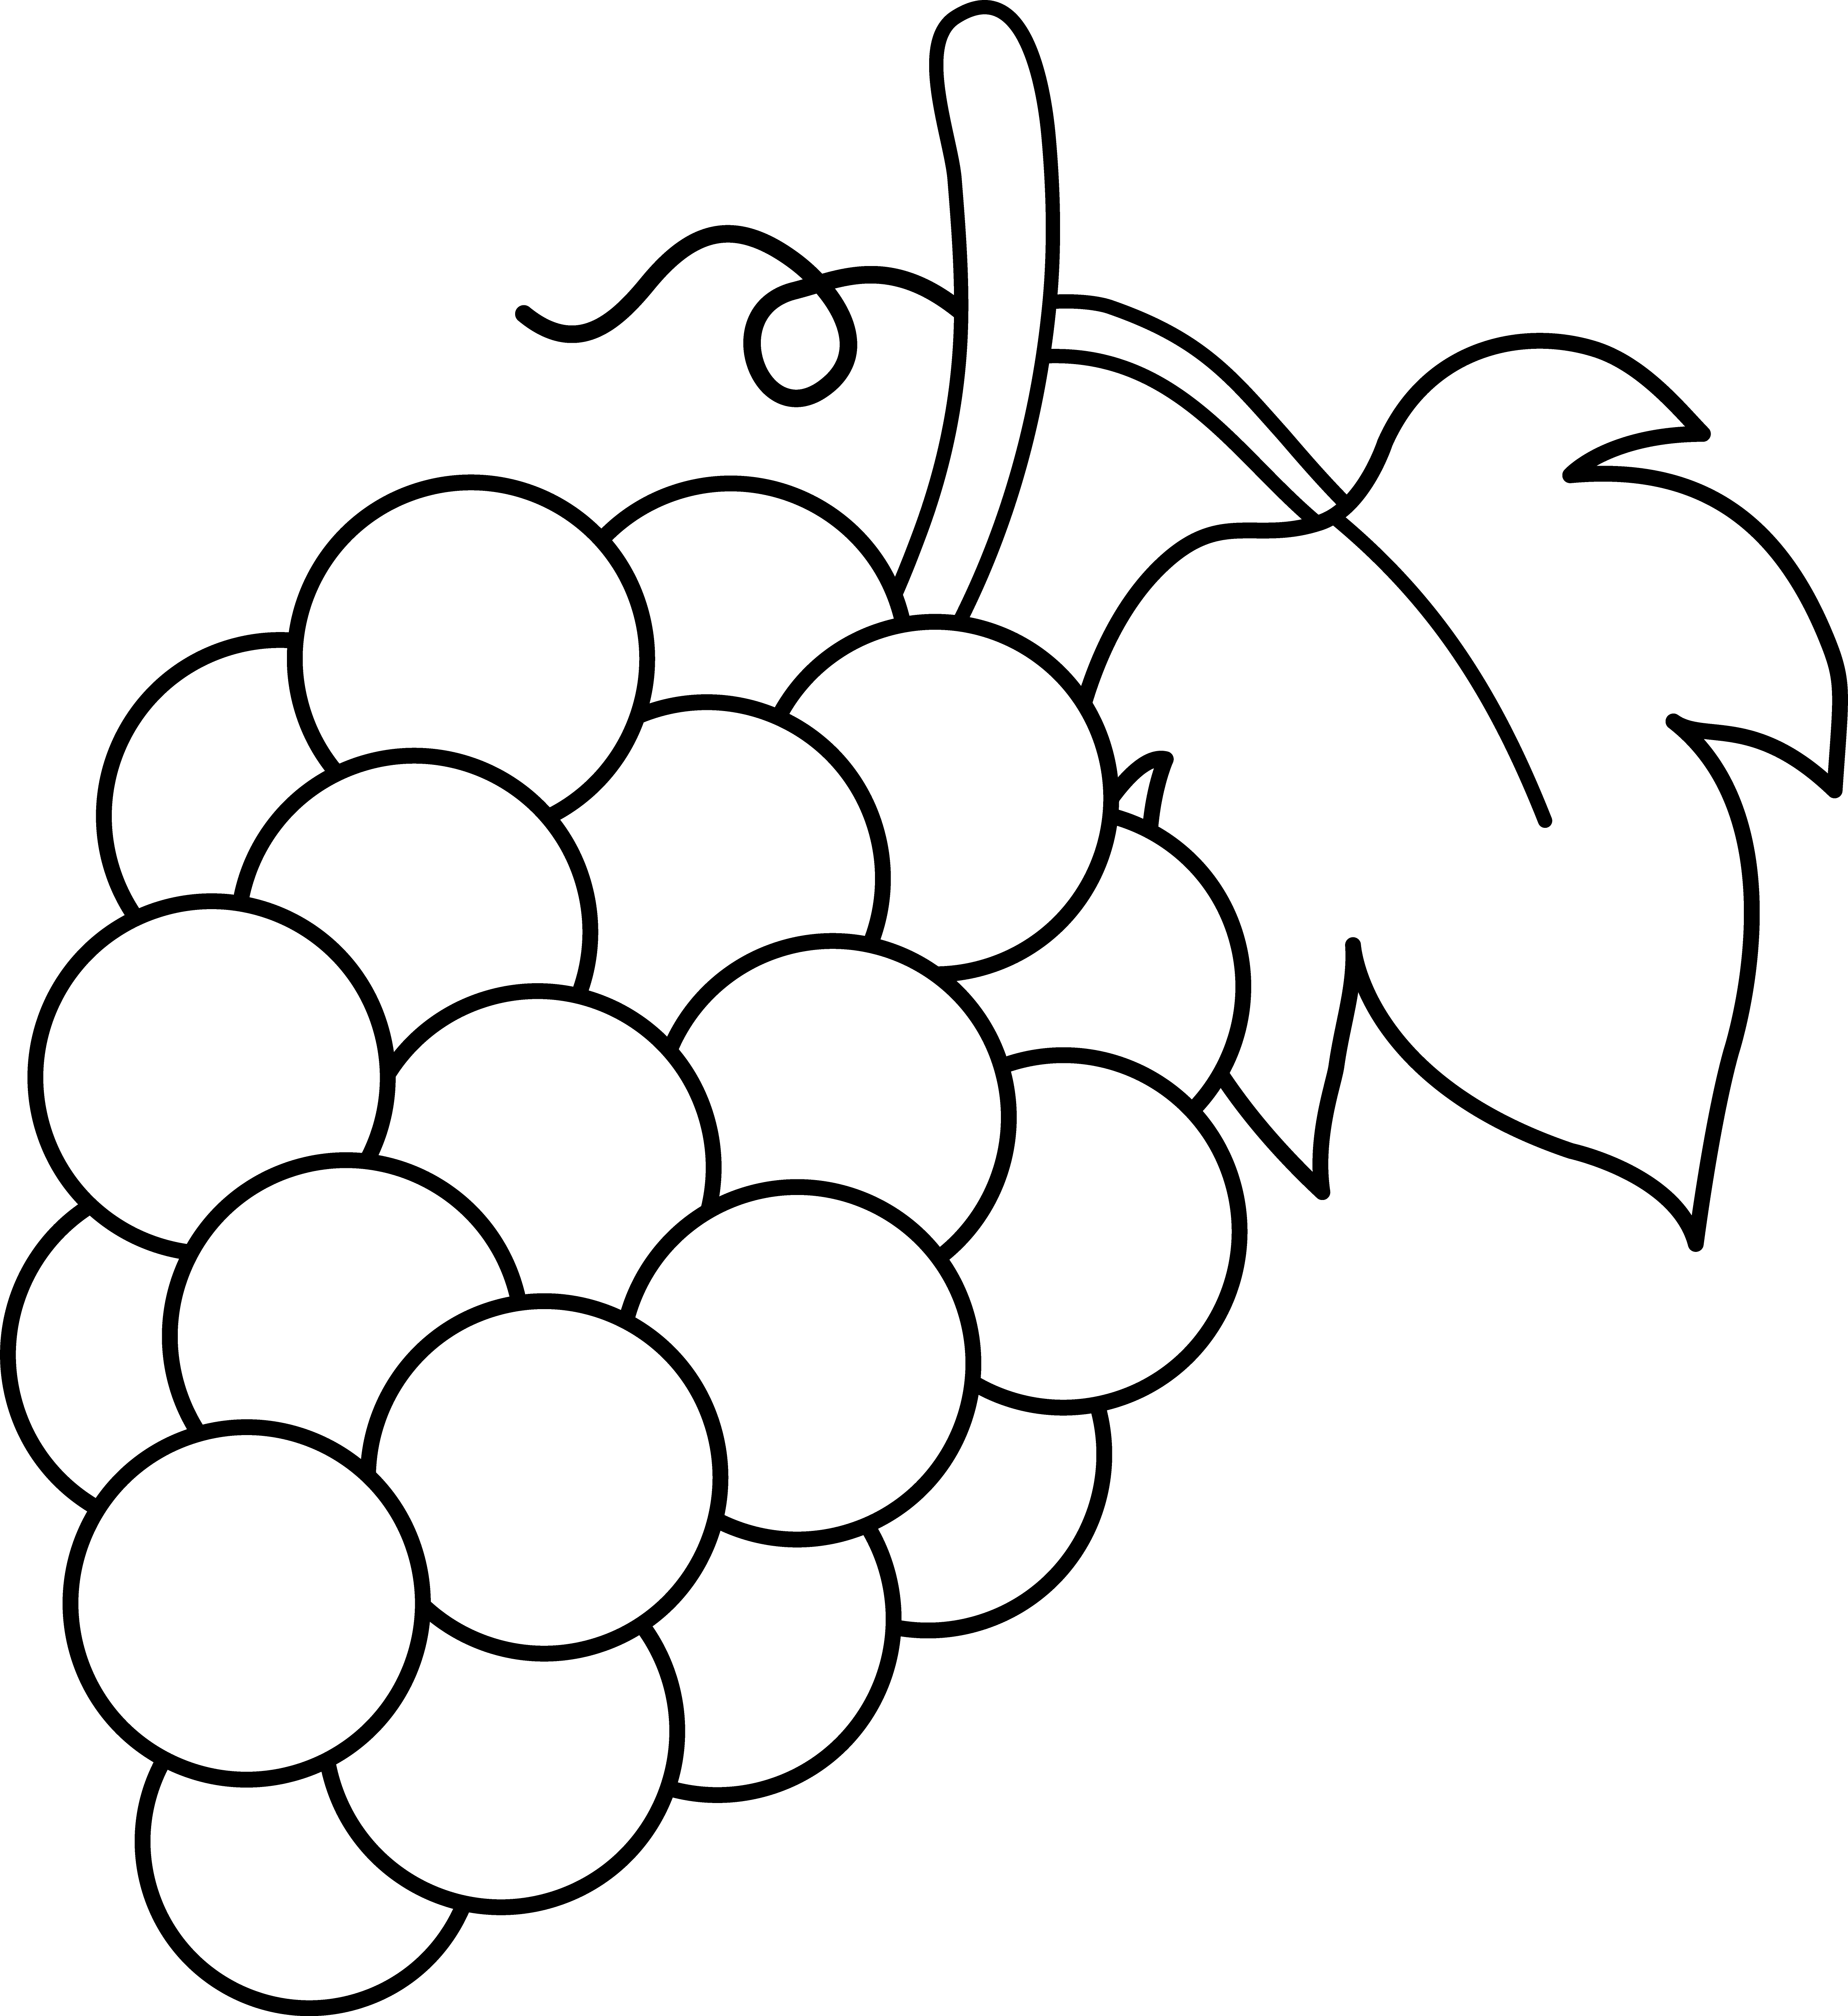 Grapes Black And White Lineart Free Clip Art Fruit Coloring Pages Grape Drawing Free Clip Art